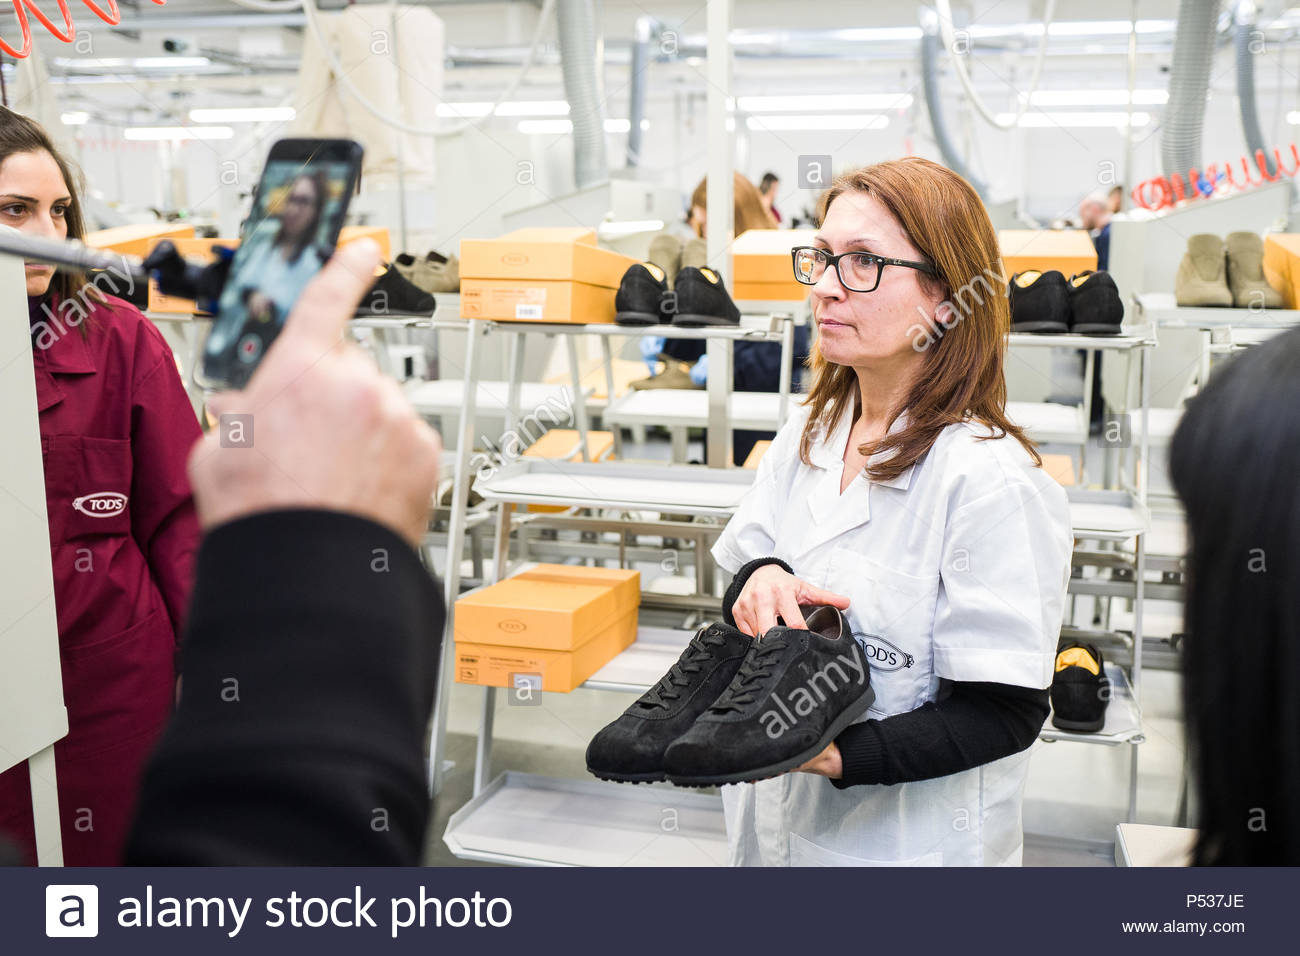 Tod's opening to Arquata del Tronto (AP) - 20th December 2017 | a pair of shoes just produced ready for packaging. - Stock Image